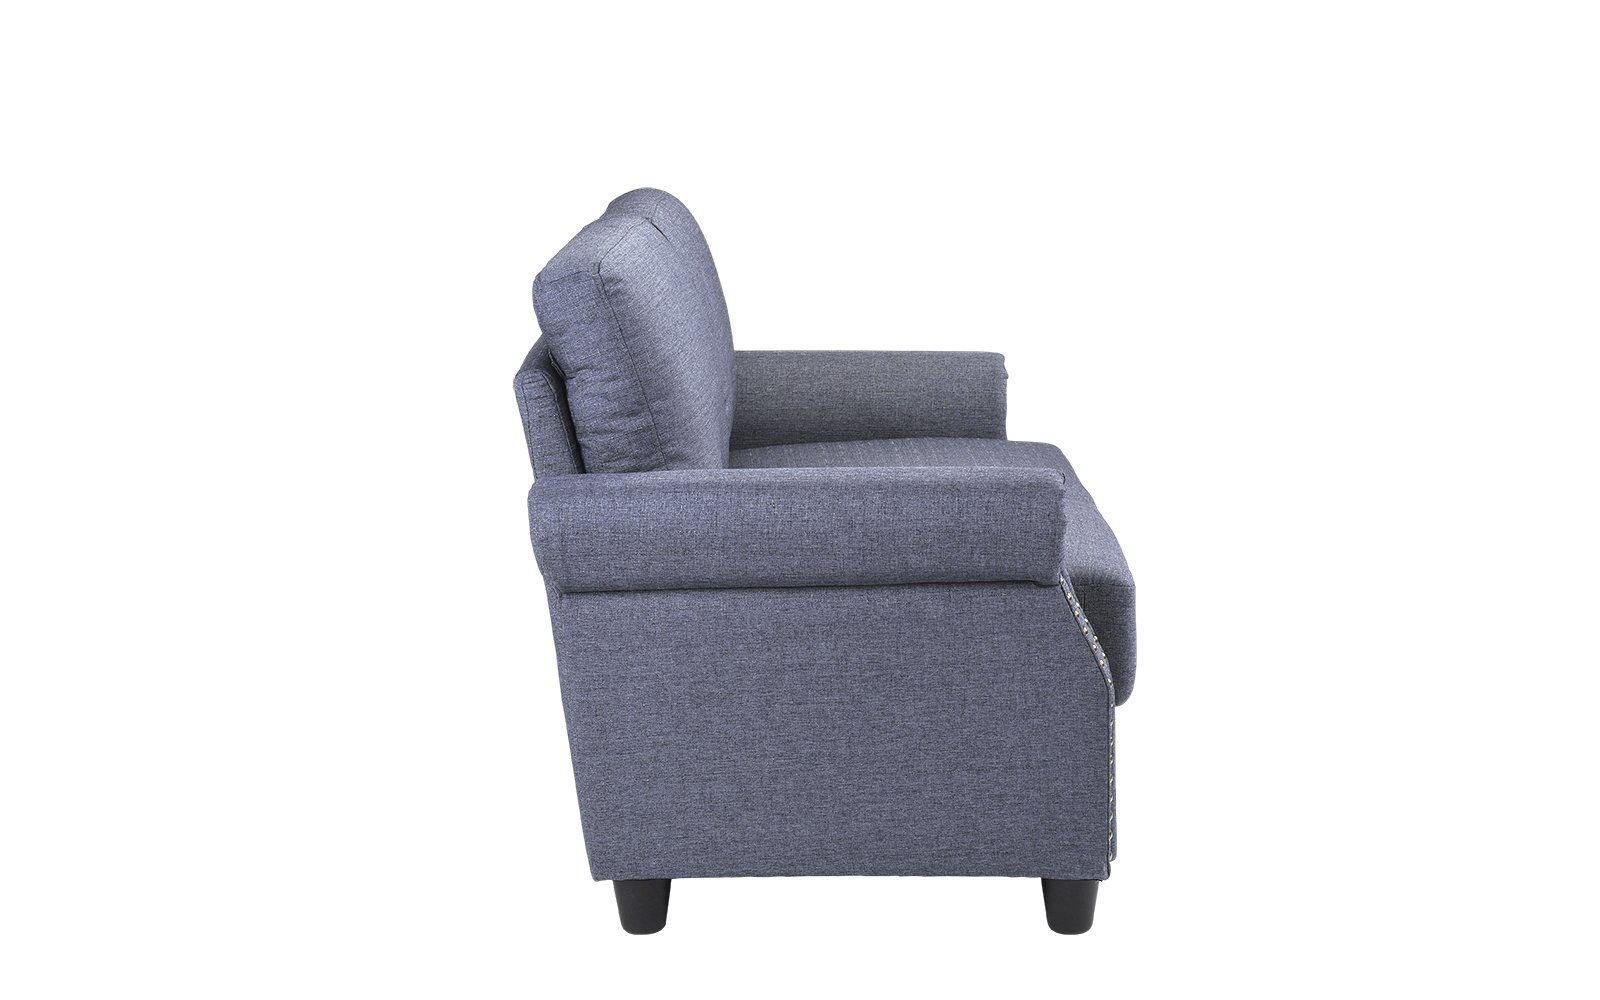 Classic Living Room Linen Loveseat with Nailhead Trim and Storage Space (Blue) by Sofamania (Image #4)